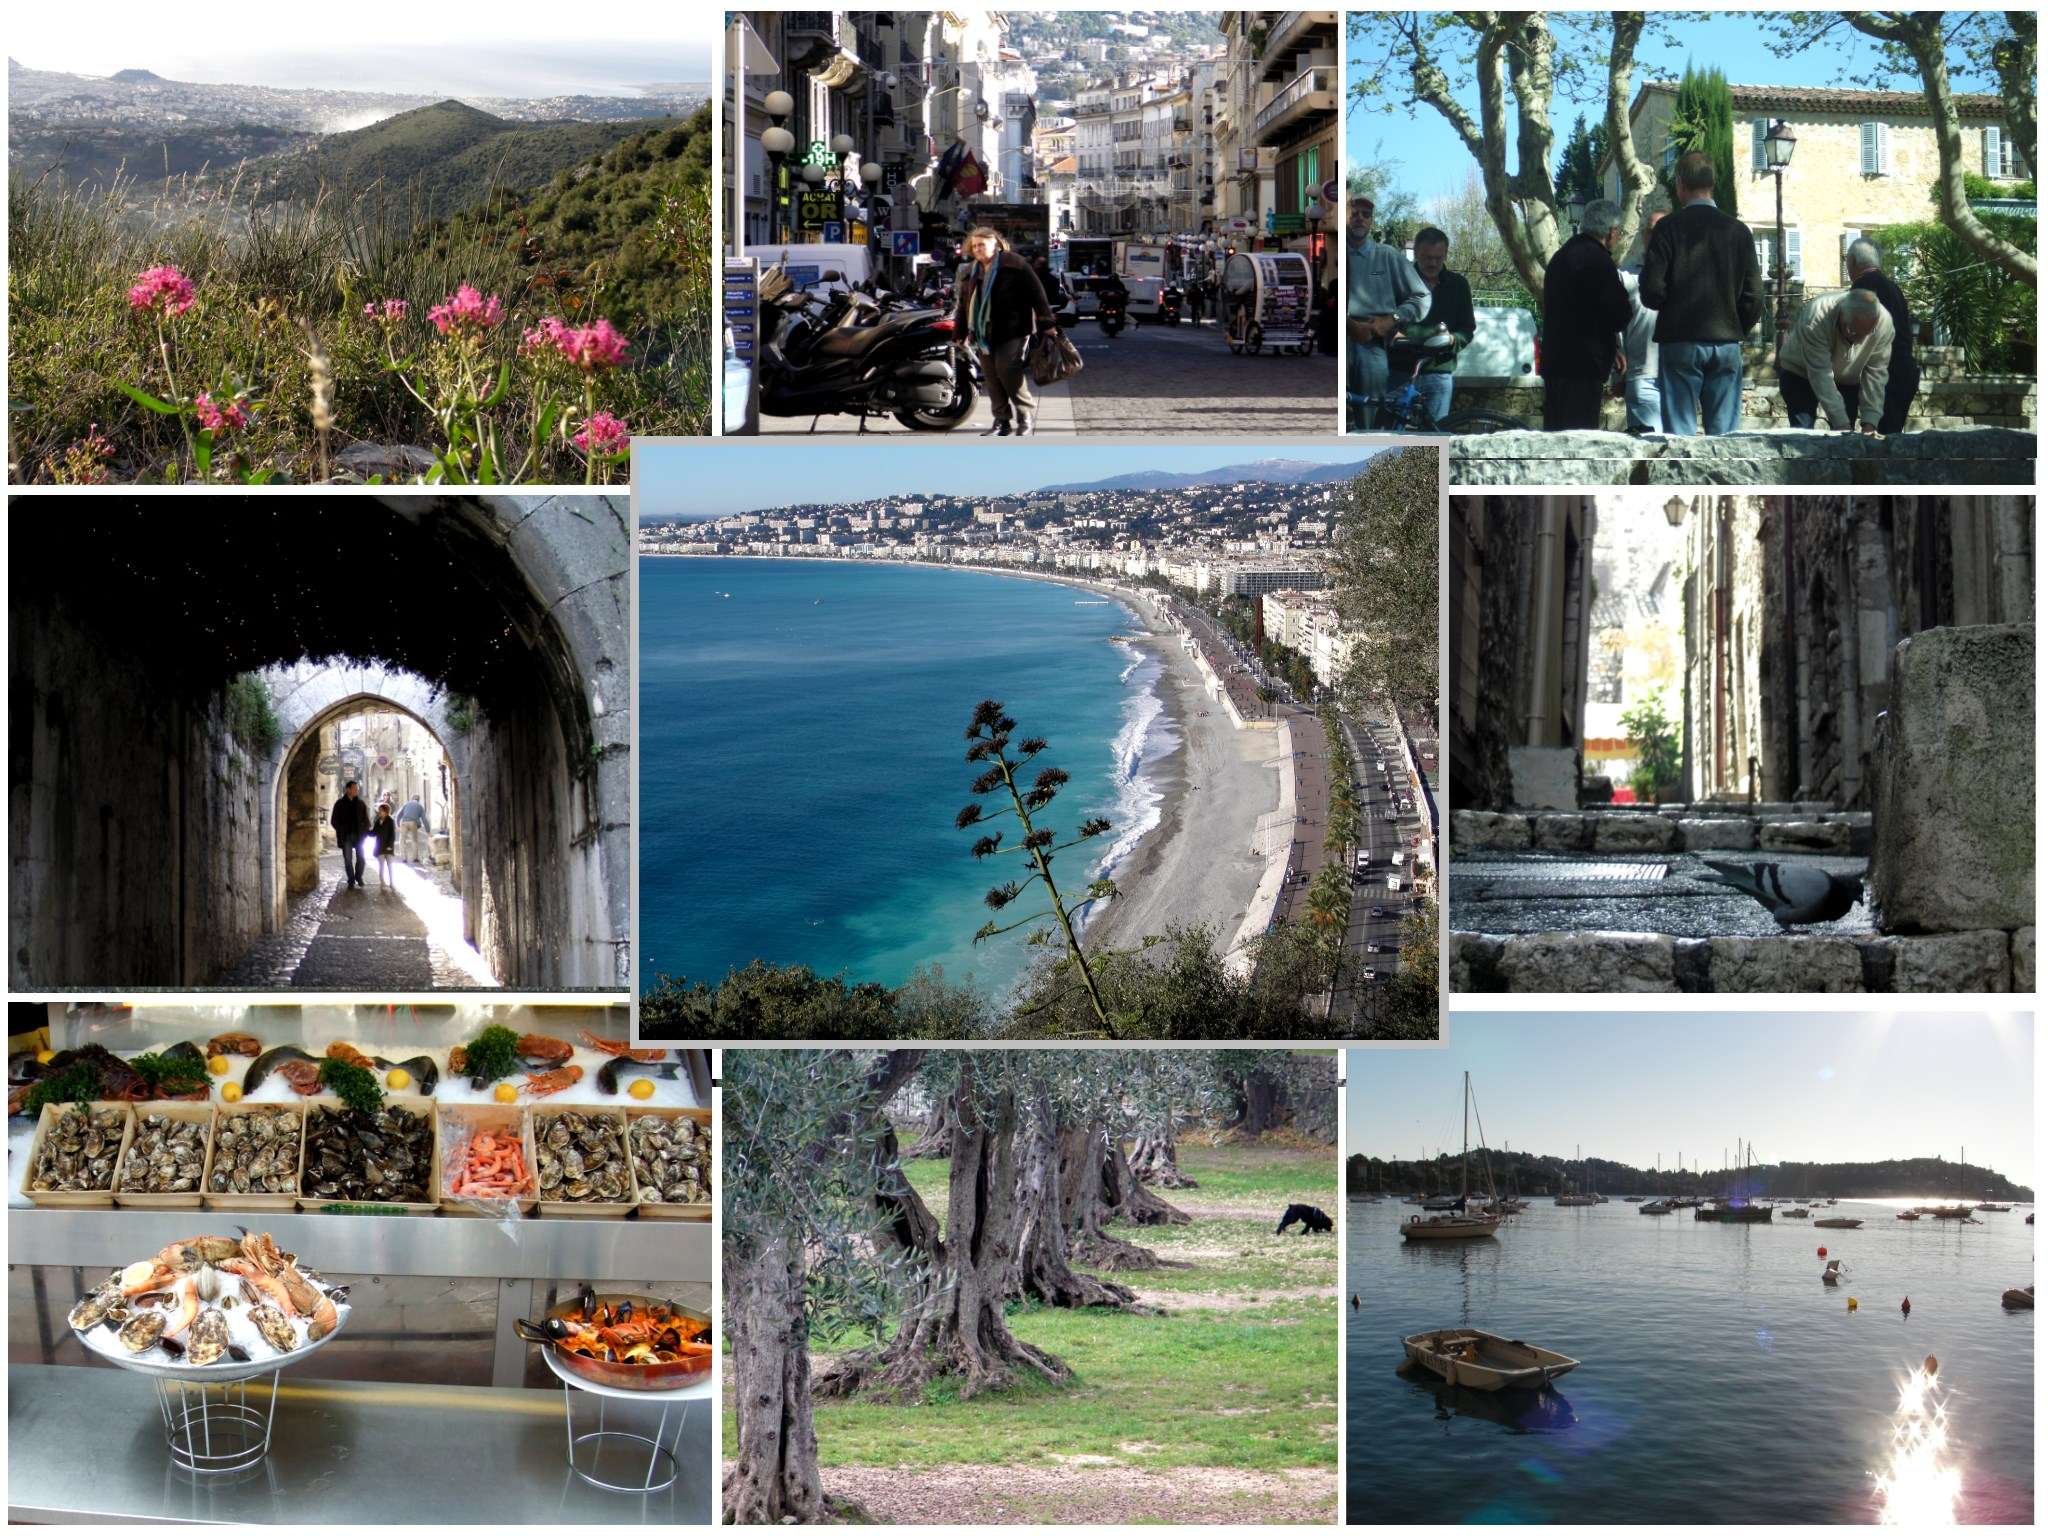 the gems of Nice and the French Riviera matkaopas